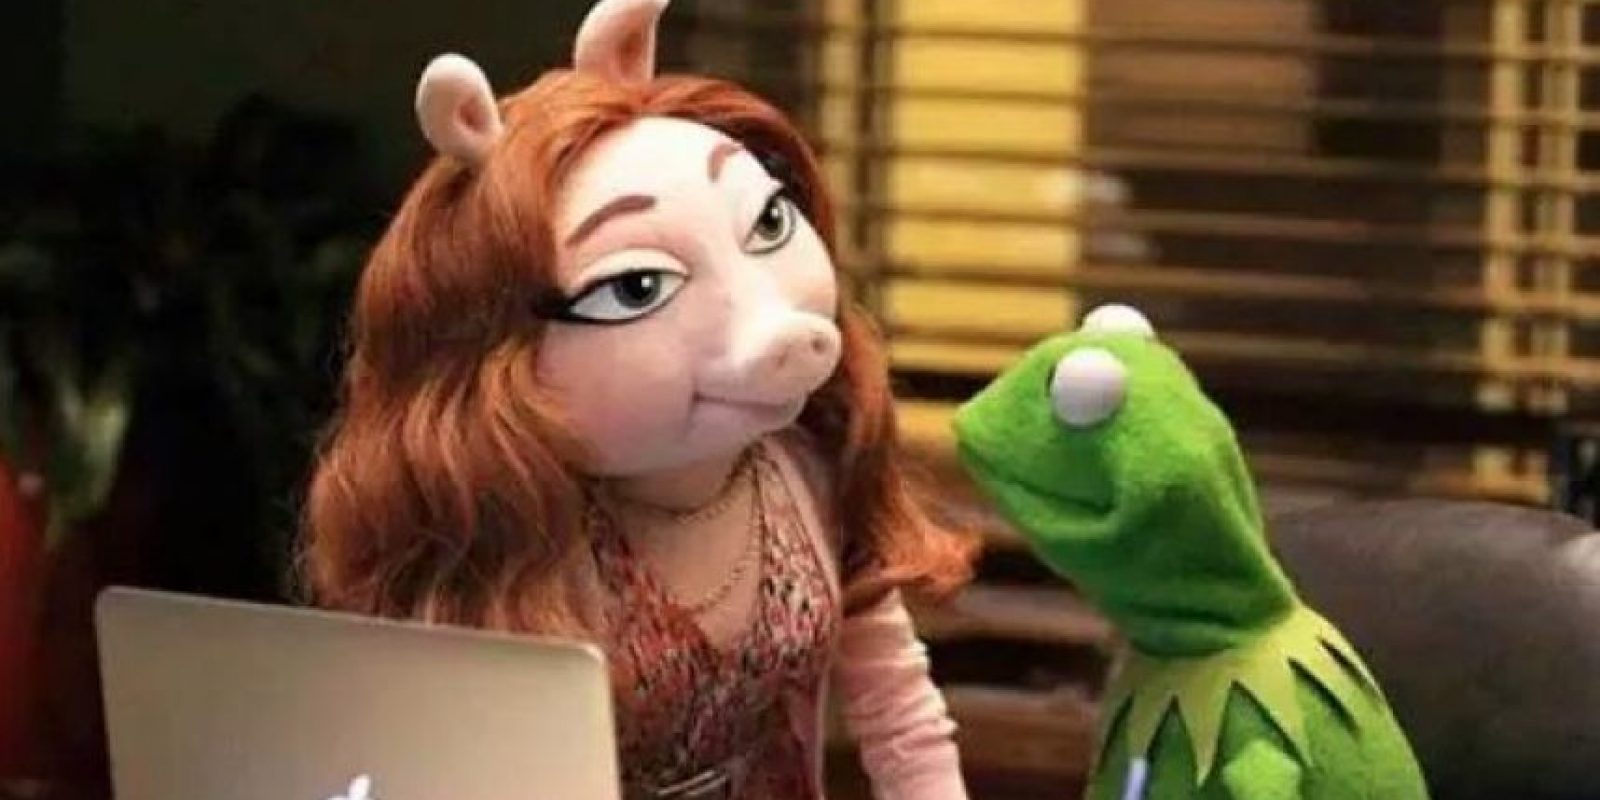 """Denise"" trabaja en el departamento de marketing de ABC Foto: Facebook/TheMuppetsABC"